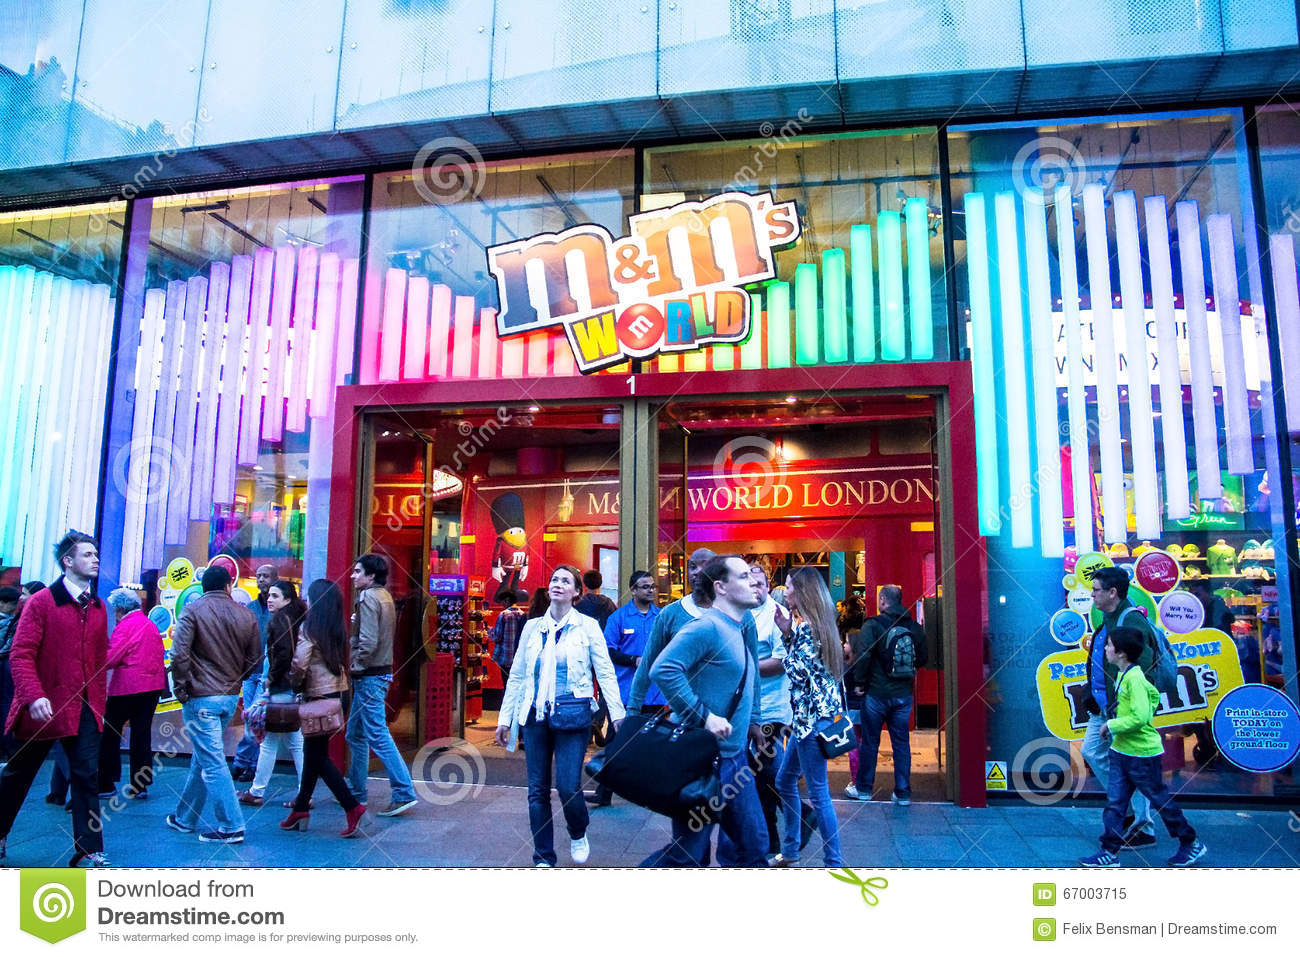 Located on the heart of Leicester Square, M&M's World is possibly London's sweetest attraction. Spread across 4 floors, the store is dedicated to the popular sweet M&M's with exclusive chocolates, merchandise plus limited editions and seasonal items/10(12K).